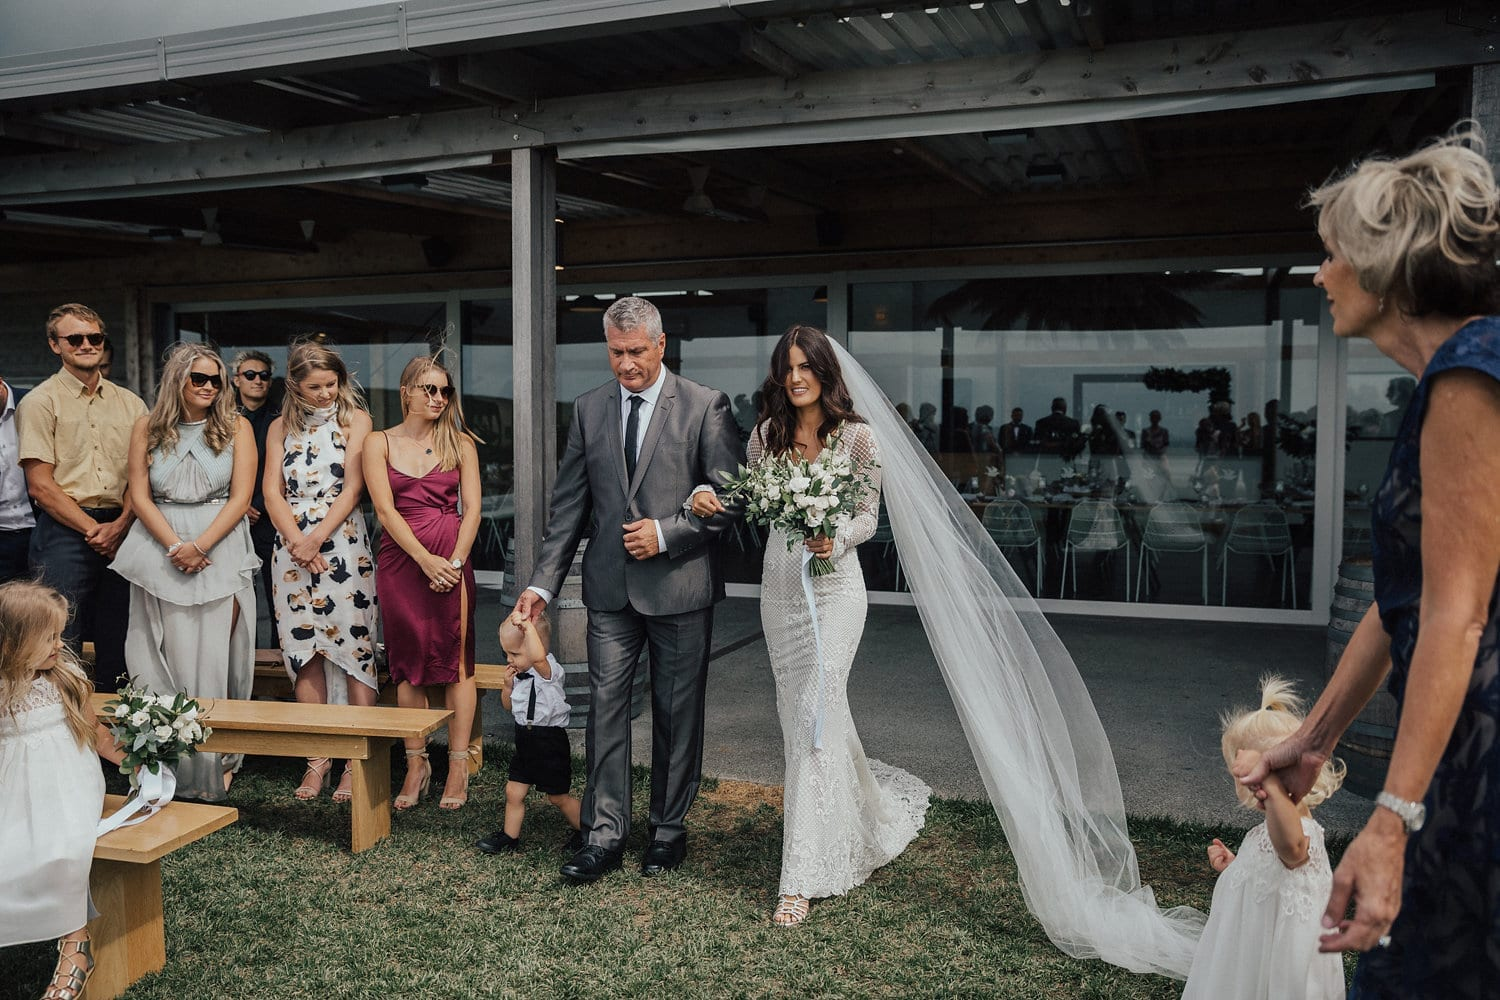 Real Weddings | Vinka Design | Real Brides Wearing Vinka Gowns | Nicole and Hayden - Nicole walking down aisle with veil